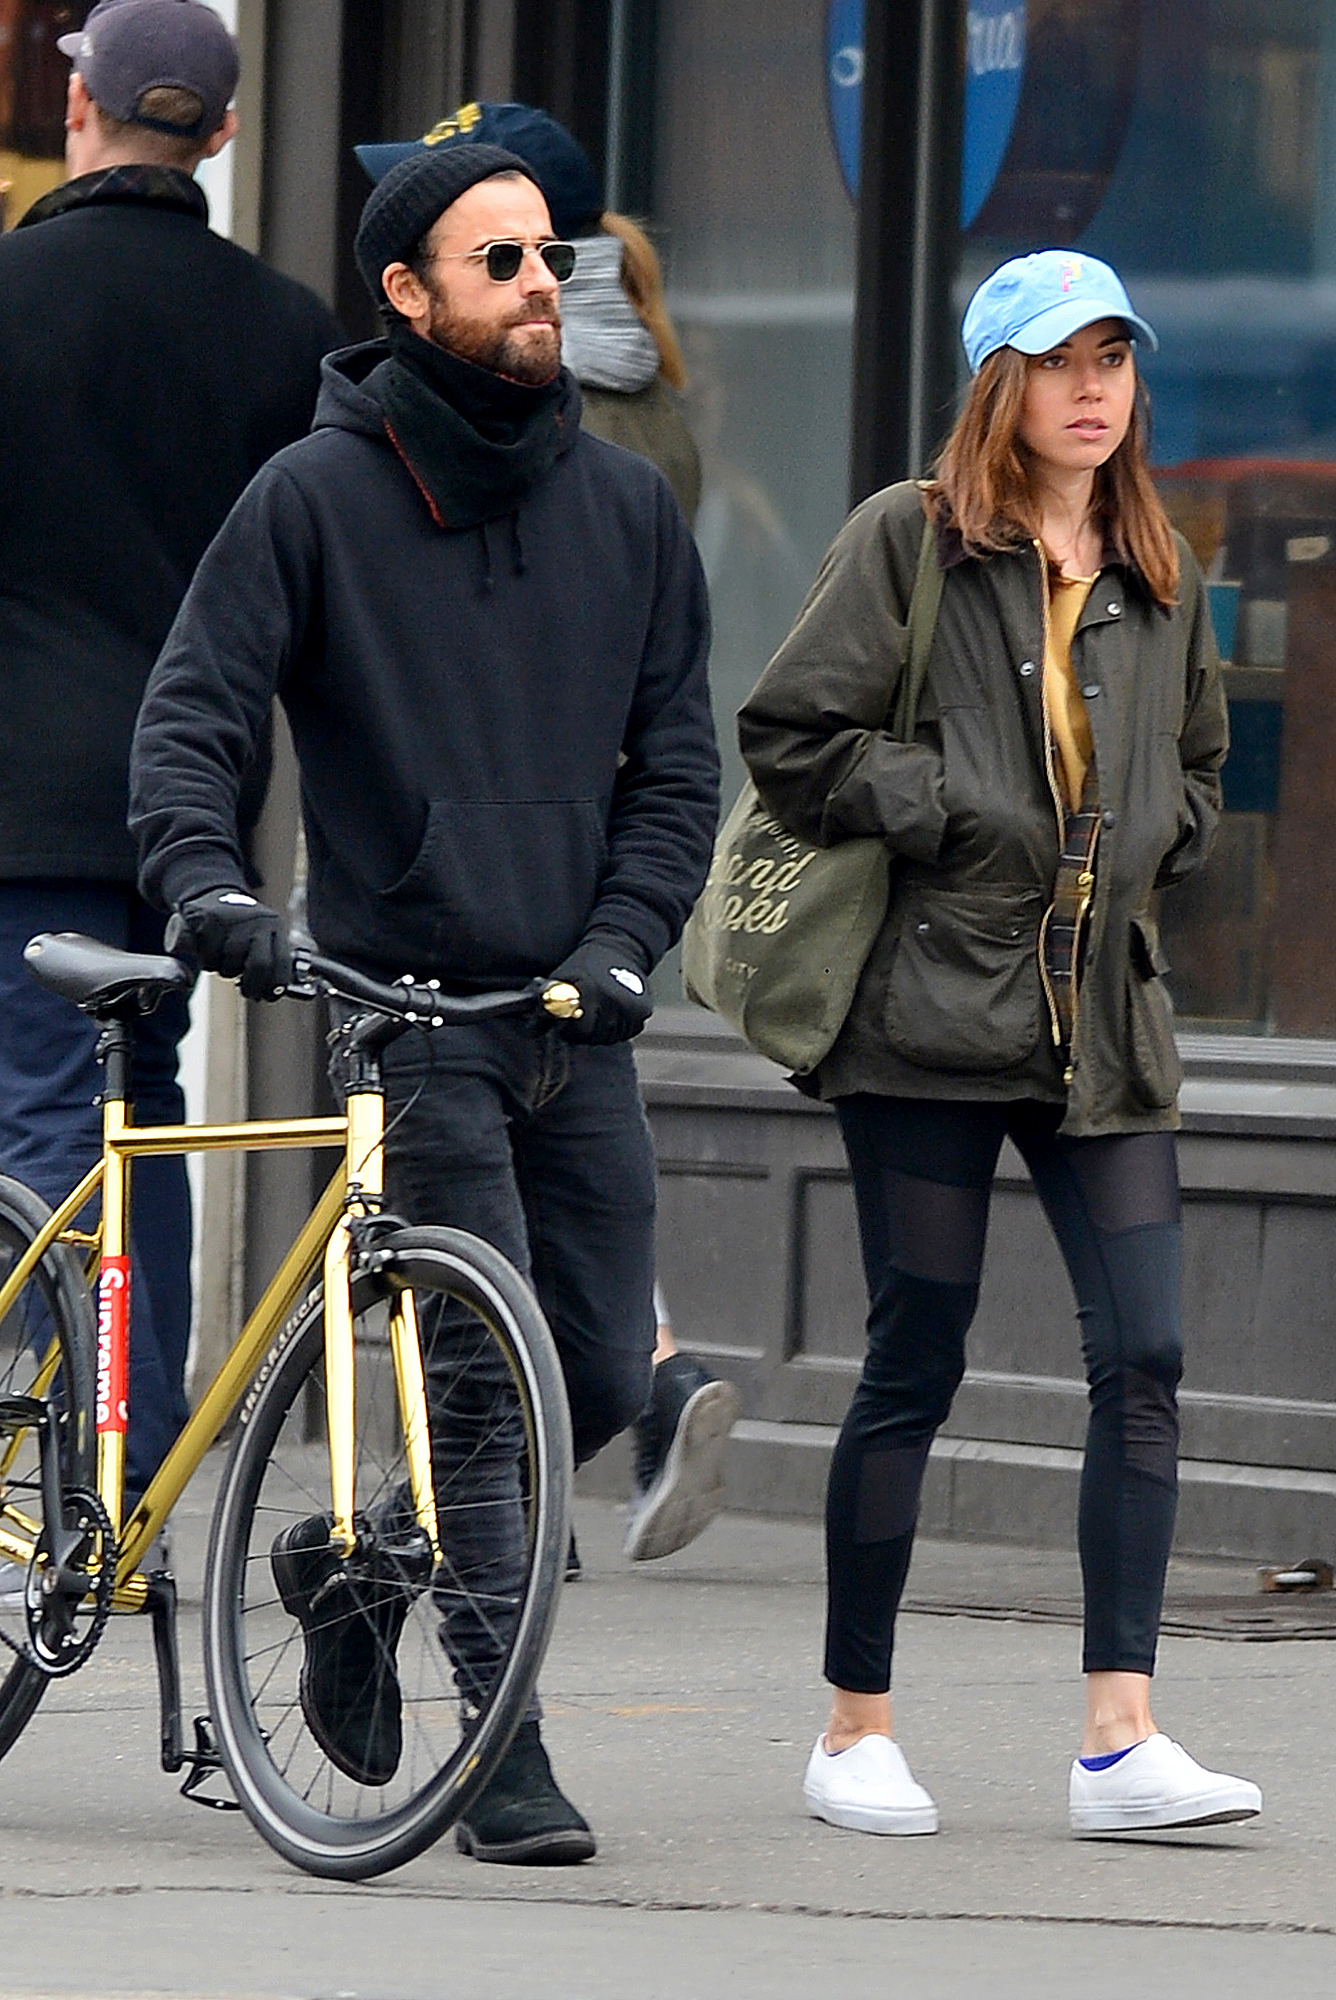 EXCLUSIVE: Justin Theroux is Spotted Out With Aubrey Plaza in New York City then End Up Going Back to Justin's Apartment Together.